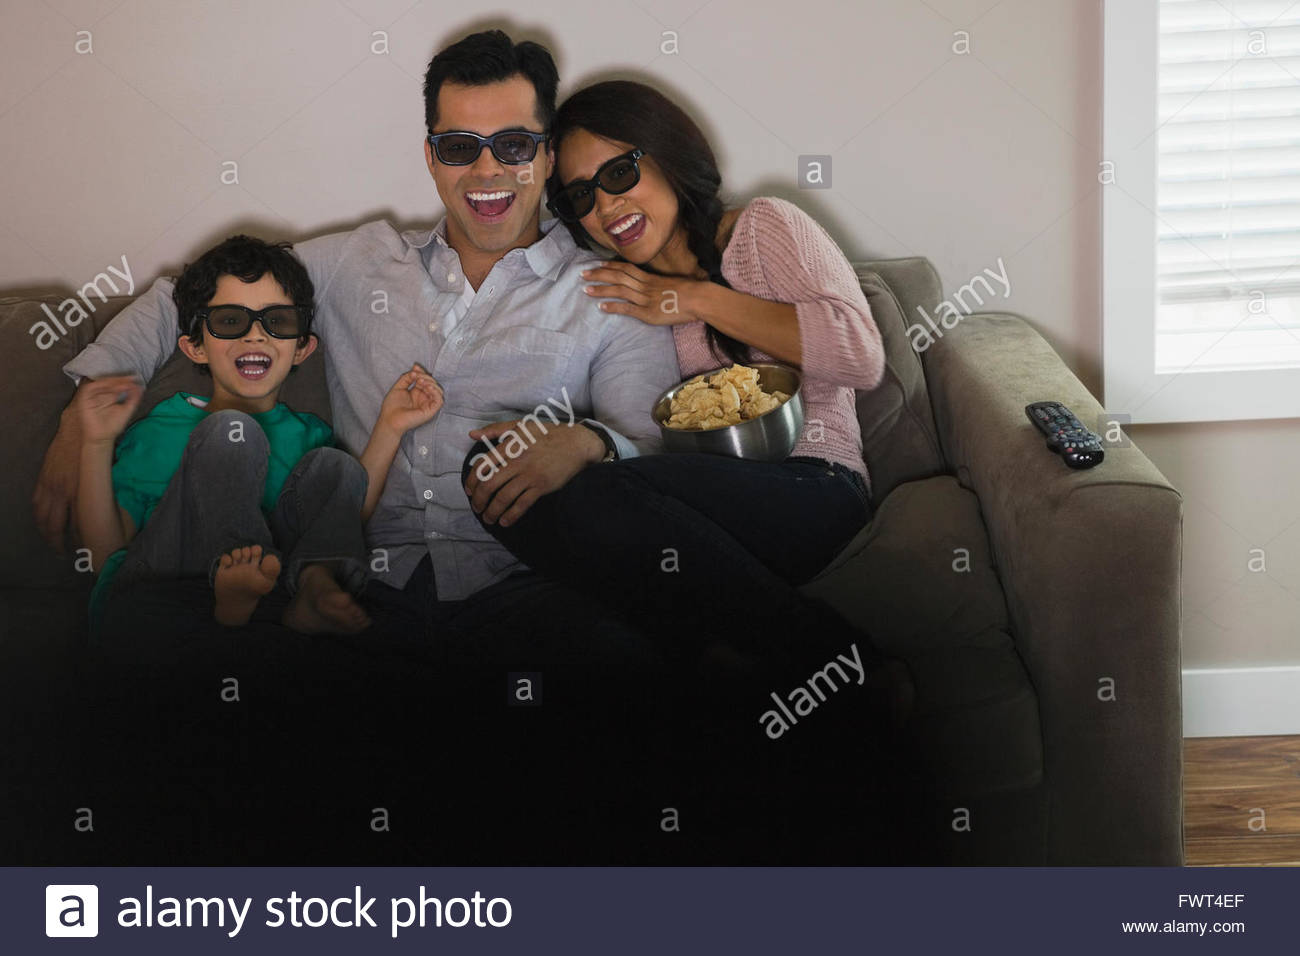 Family watching 3-D movie at home - Stock Image